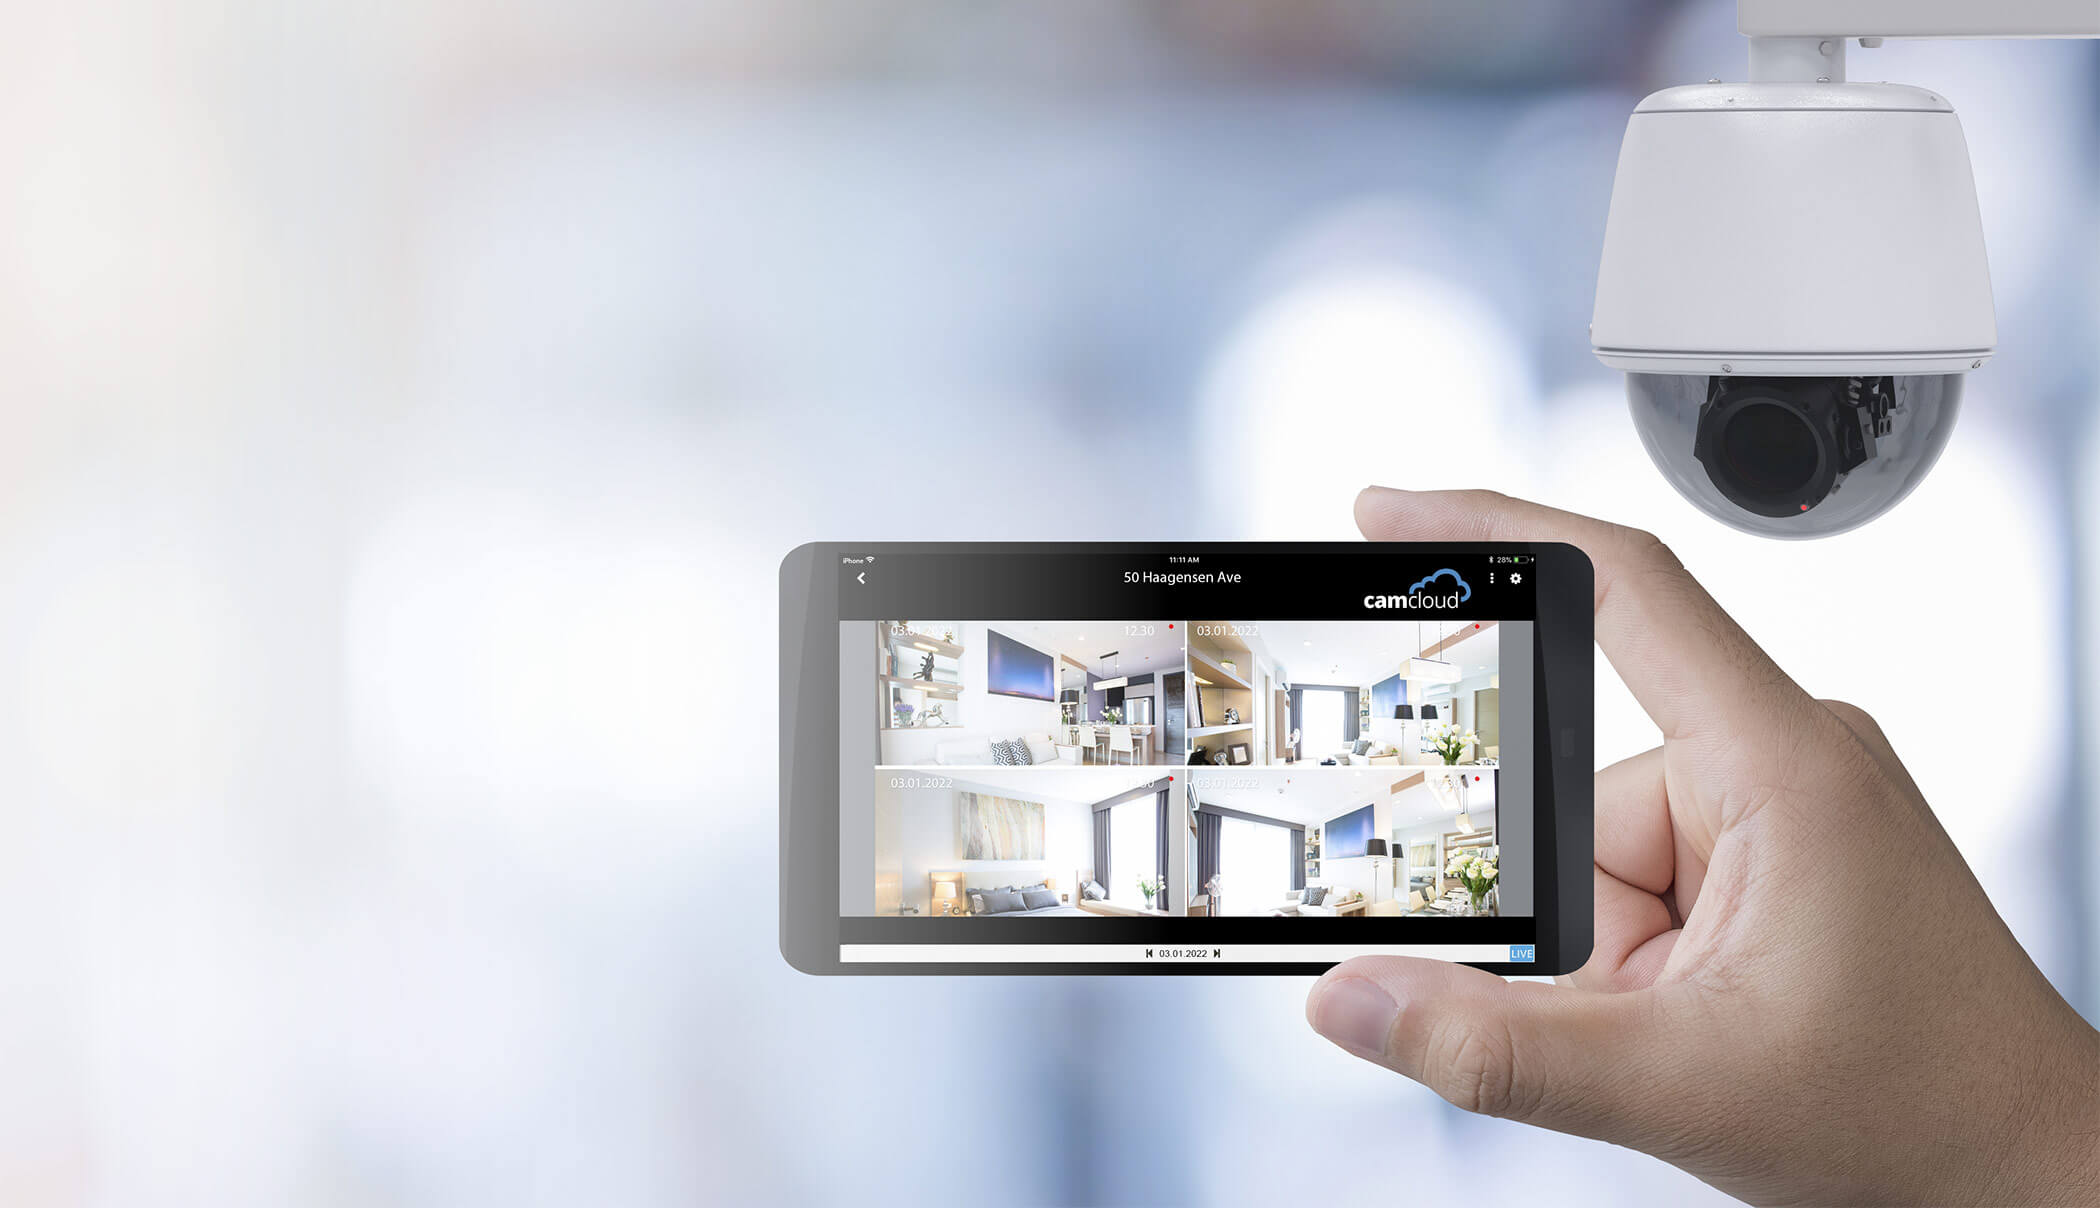 Free Cloud Video Surveillance for Home Security Cameras and